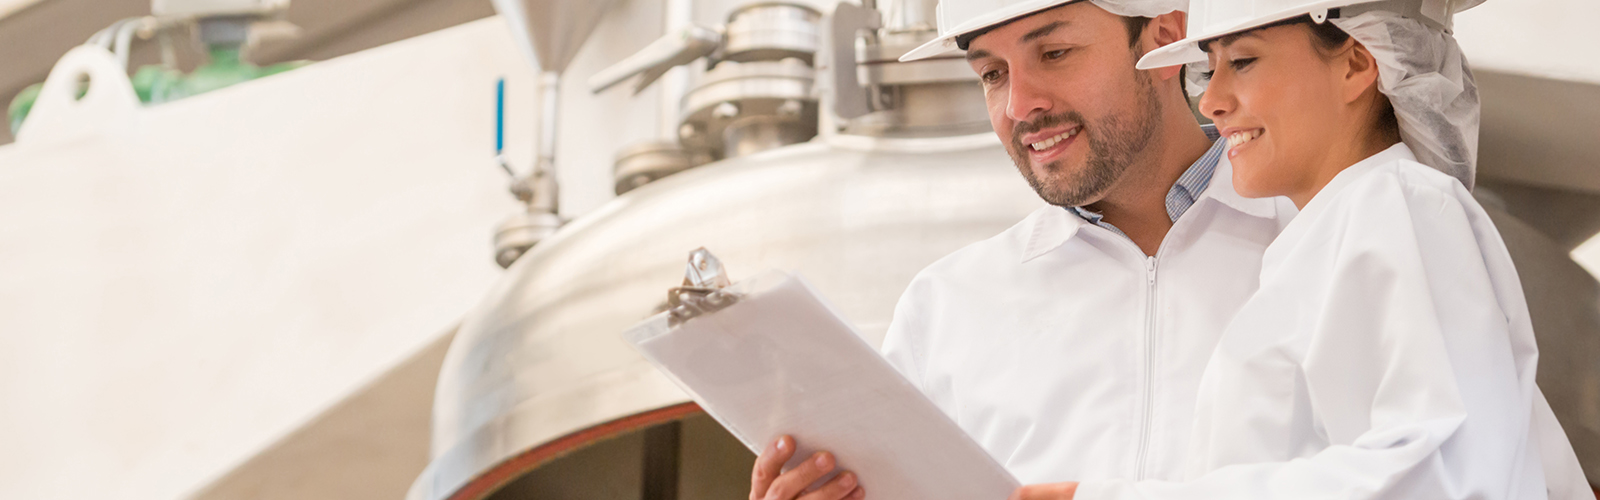 Comprehensive Industrial Hygiene The Application of Basic Principles